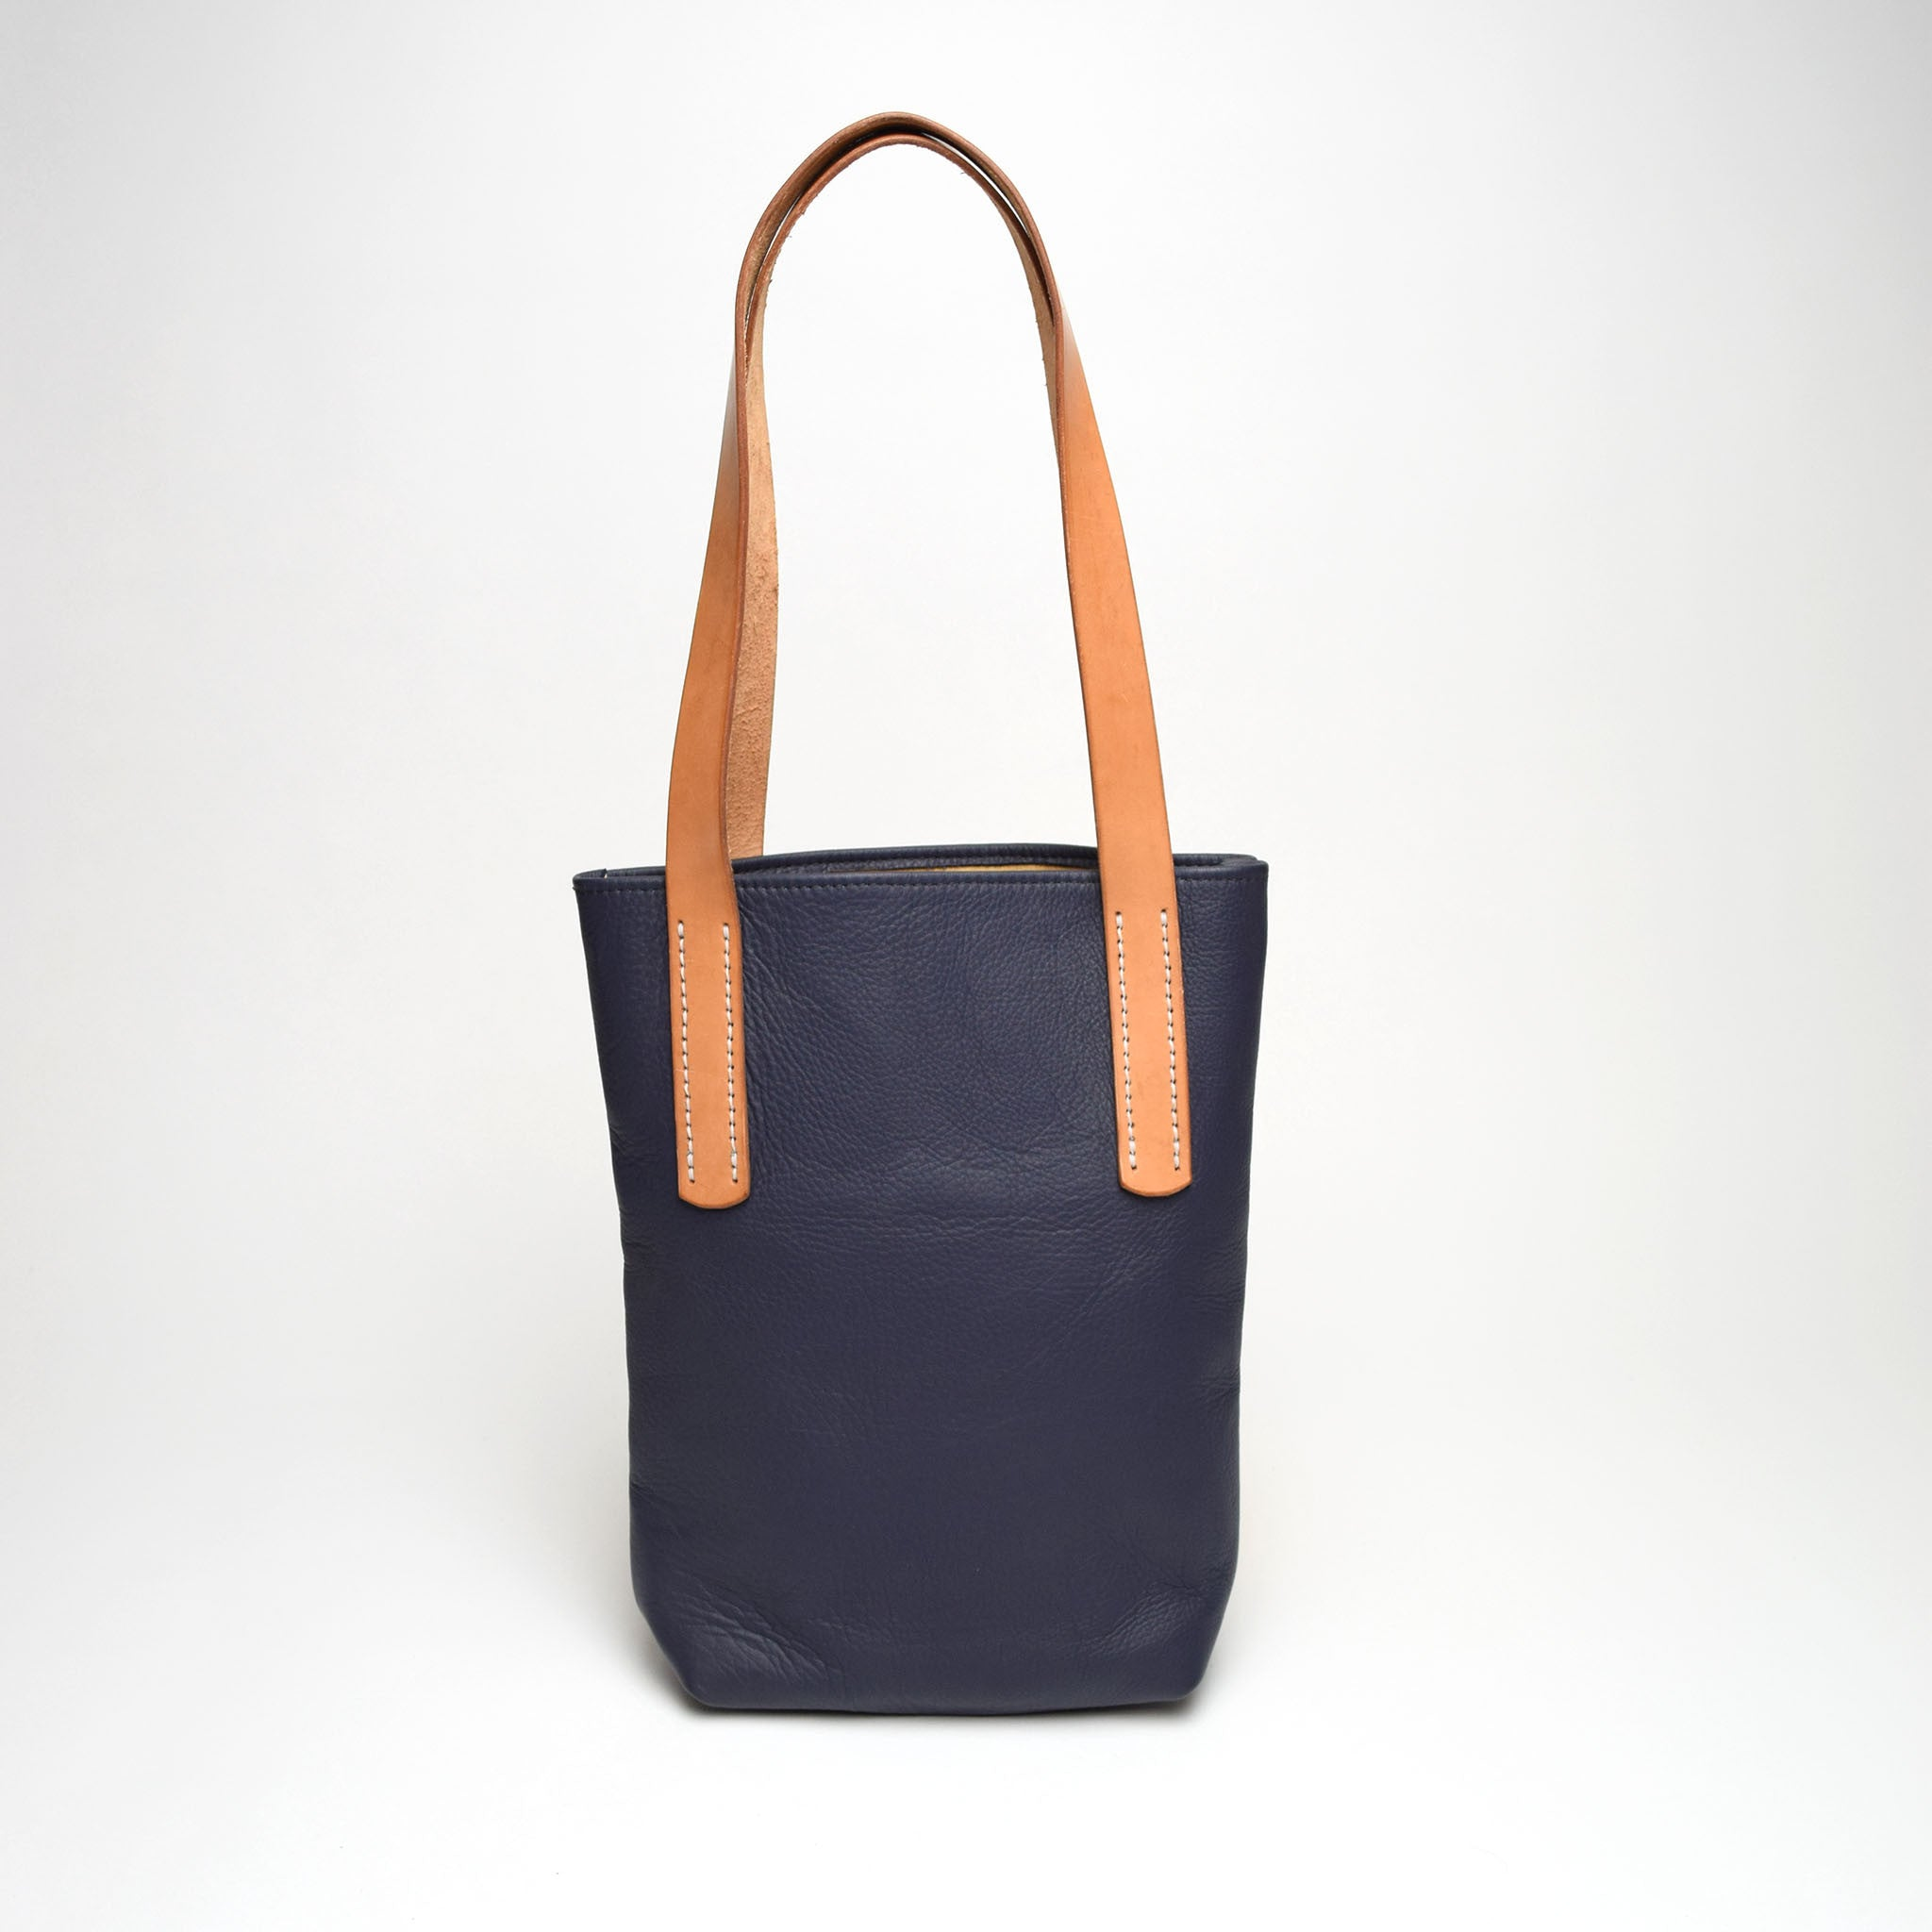 Lined Tote